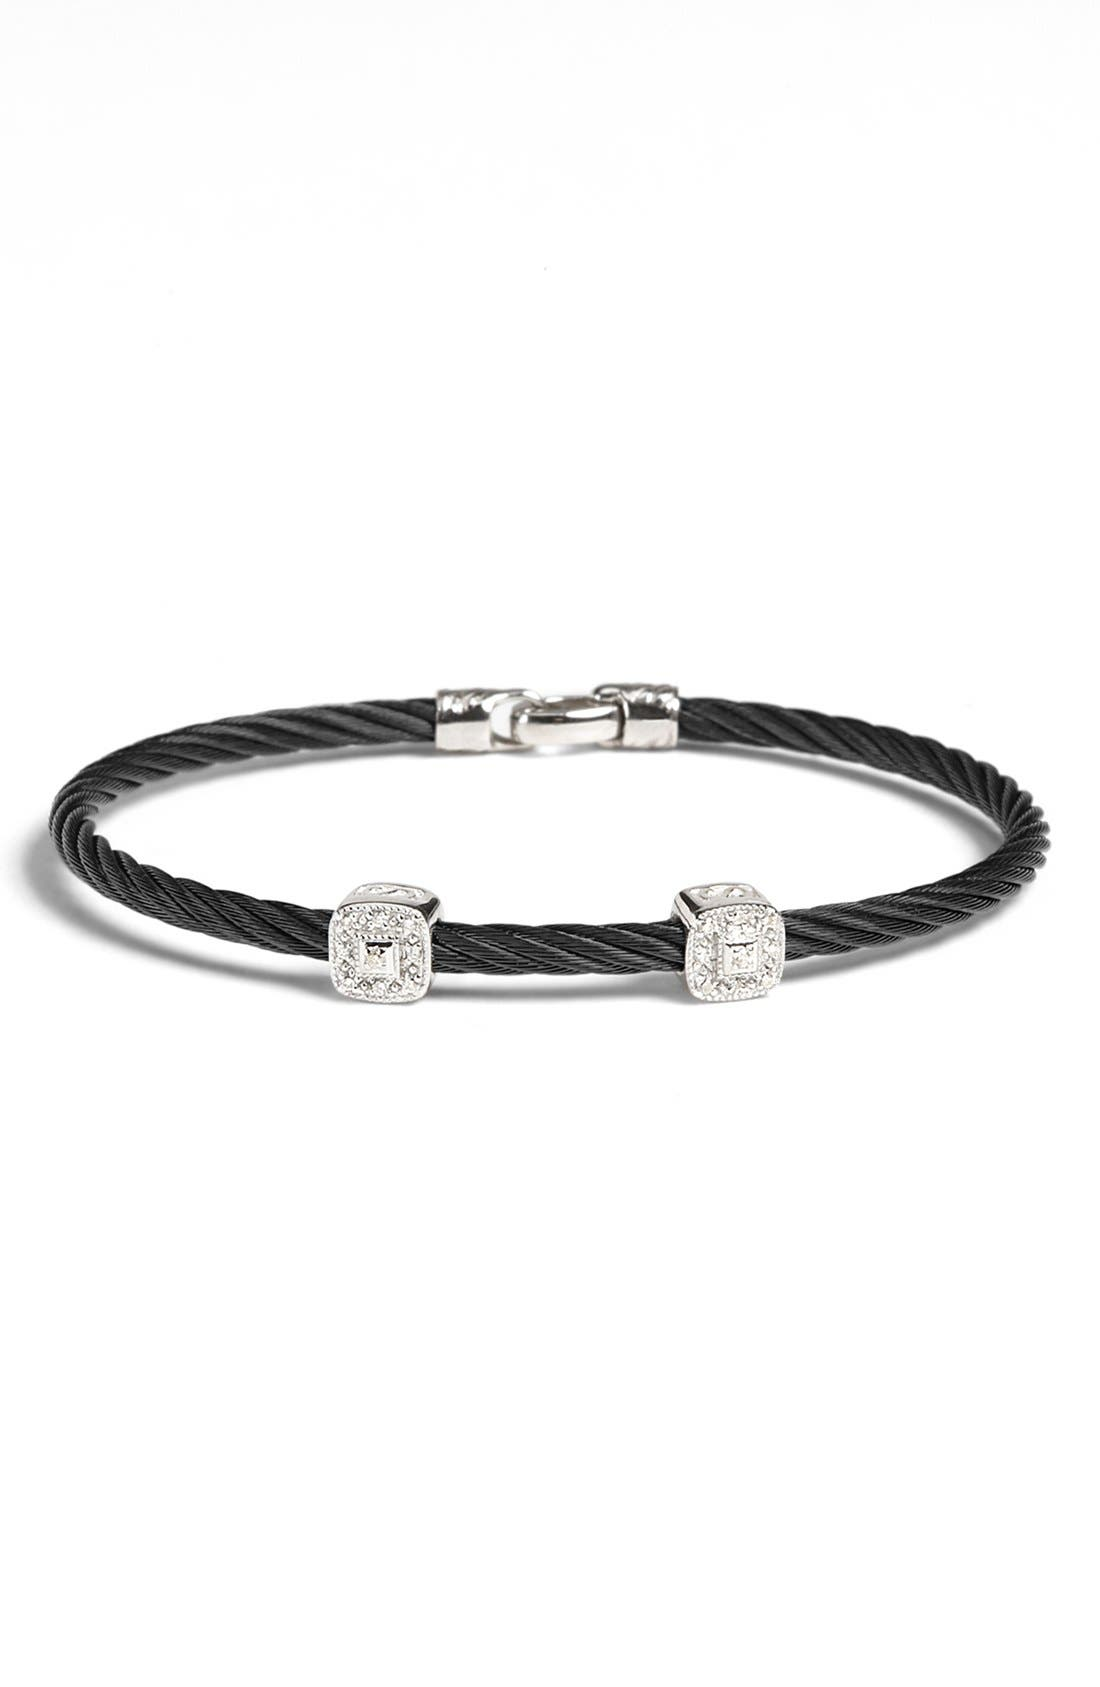 Alternate Image 1 Selected - ALOR® Square Diamond Station Stackable Bracelet